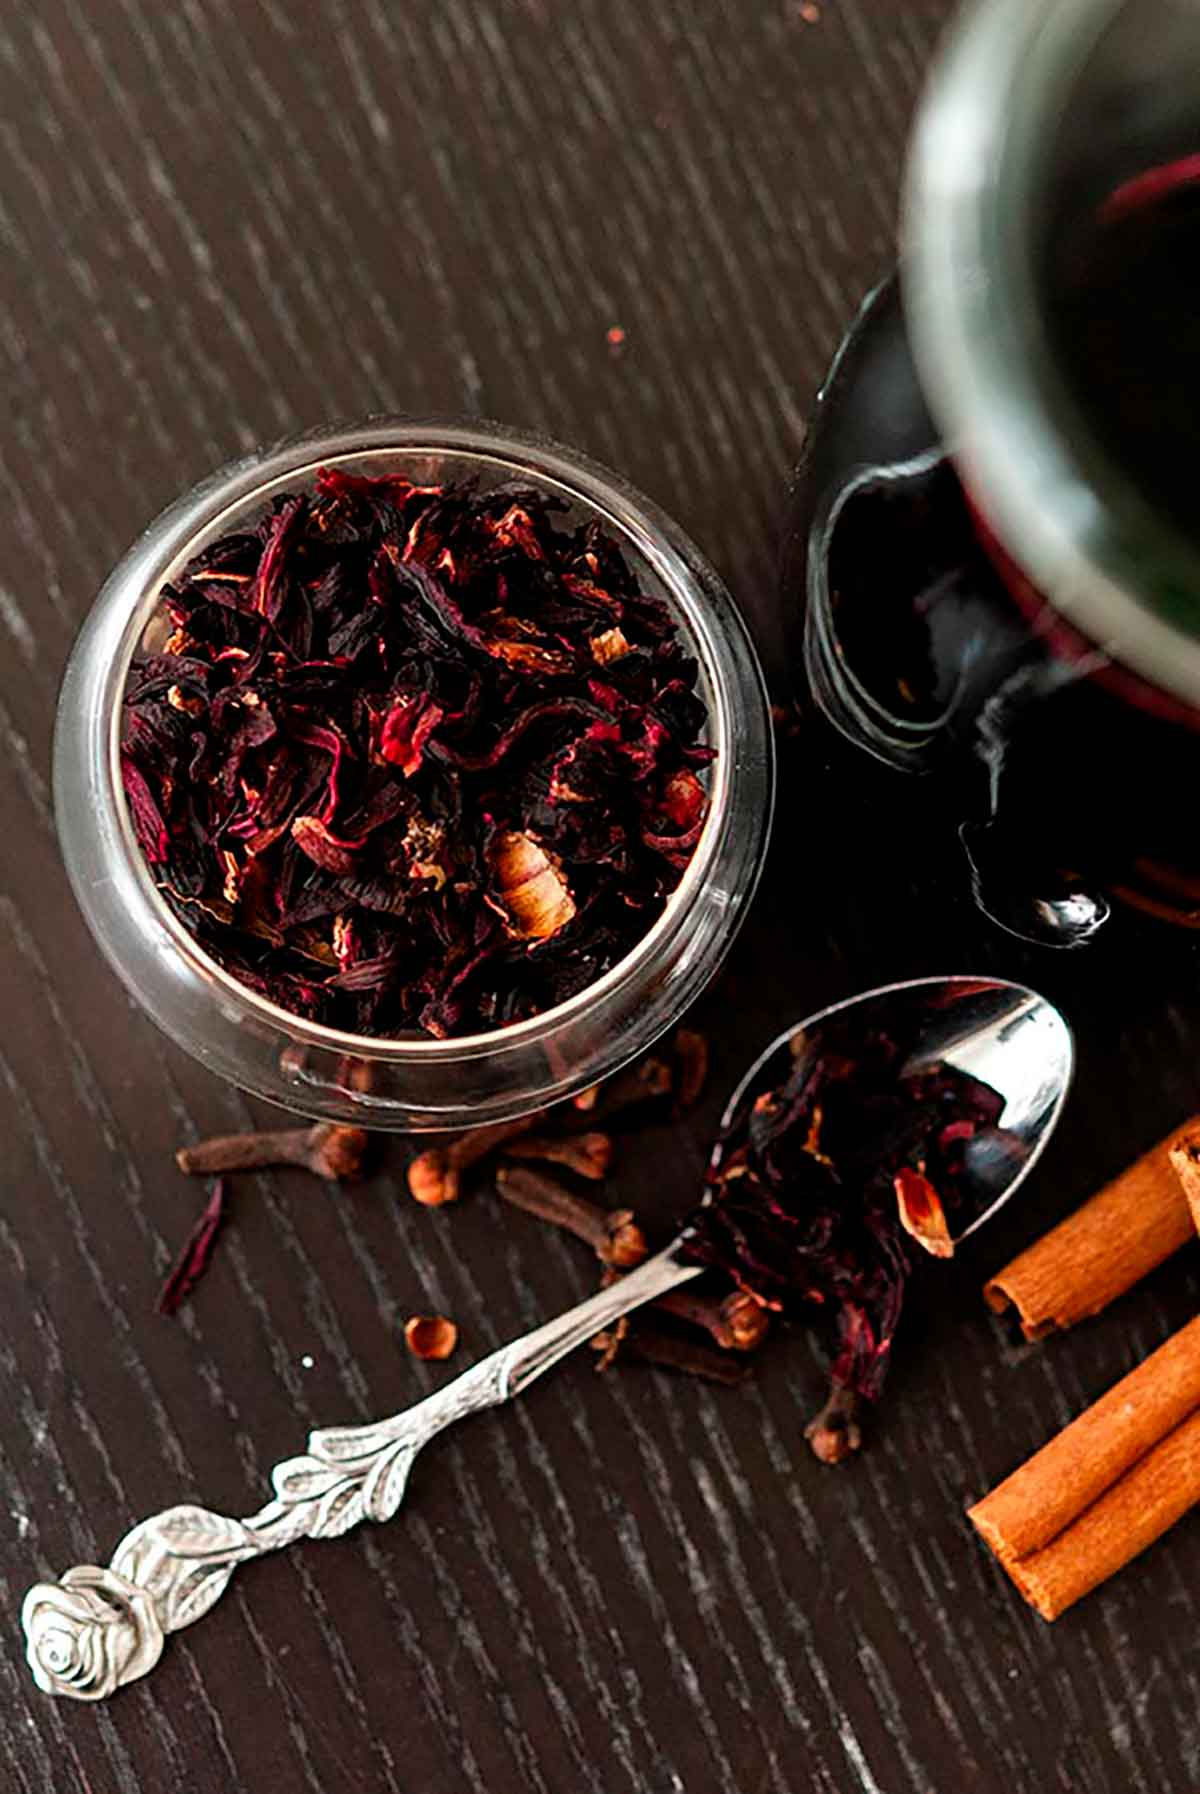 Dry hibiscus flowers in a small bowl next to a small spoon with a few scattered cloves, flowers and cinnamon sticks.